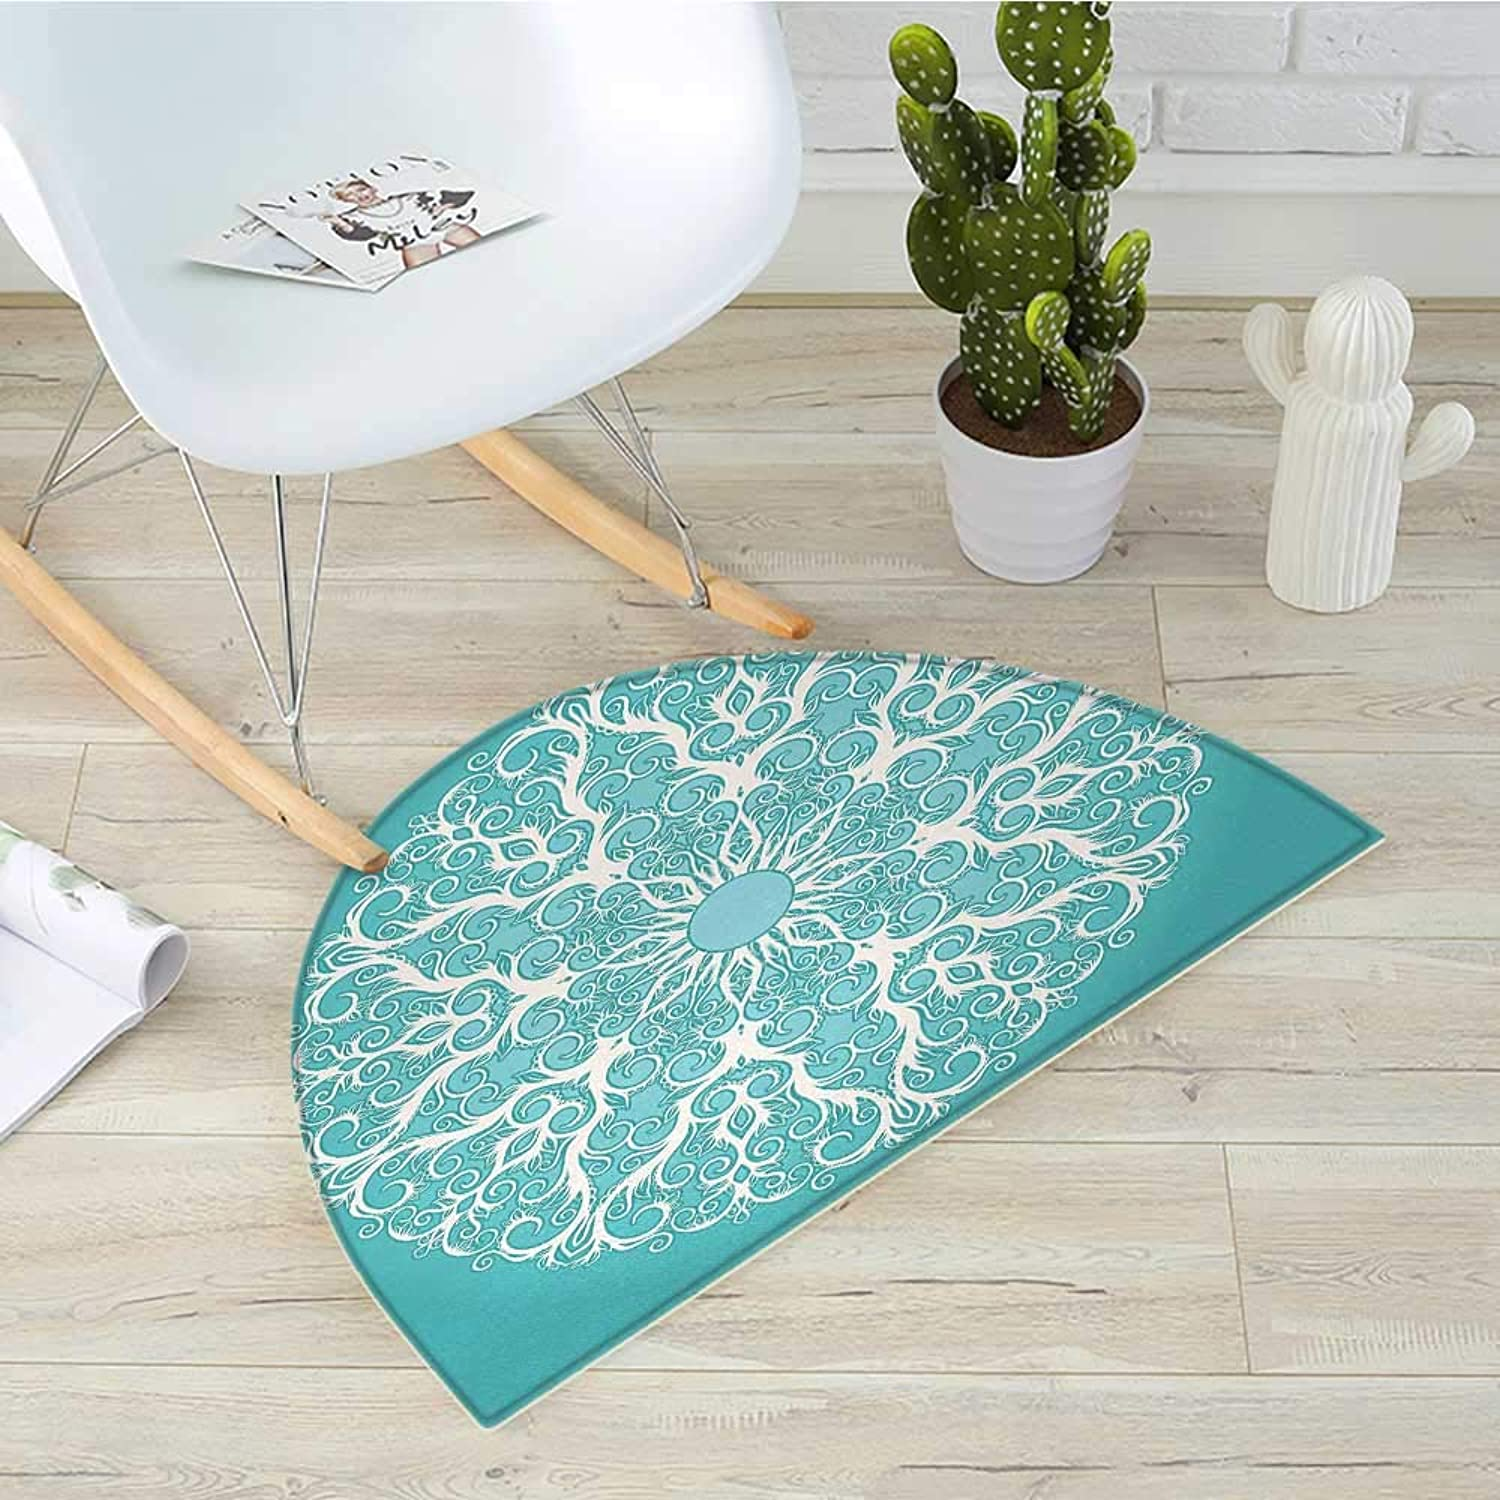 Turquoise Semicircular CushionRound Curving Tree Branches Pattern Infinite Circle Symmetrical Cuves Floral Design Entry Door Mat H 31.5  xD 47.2  White